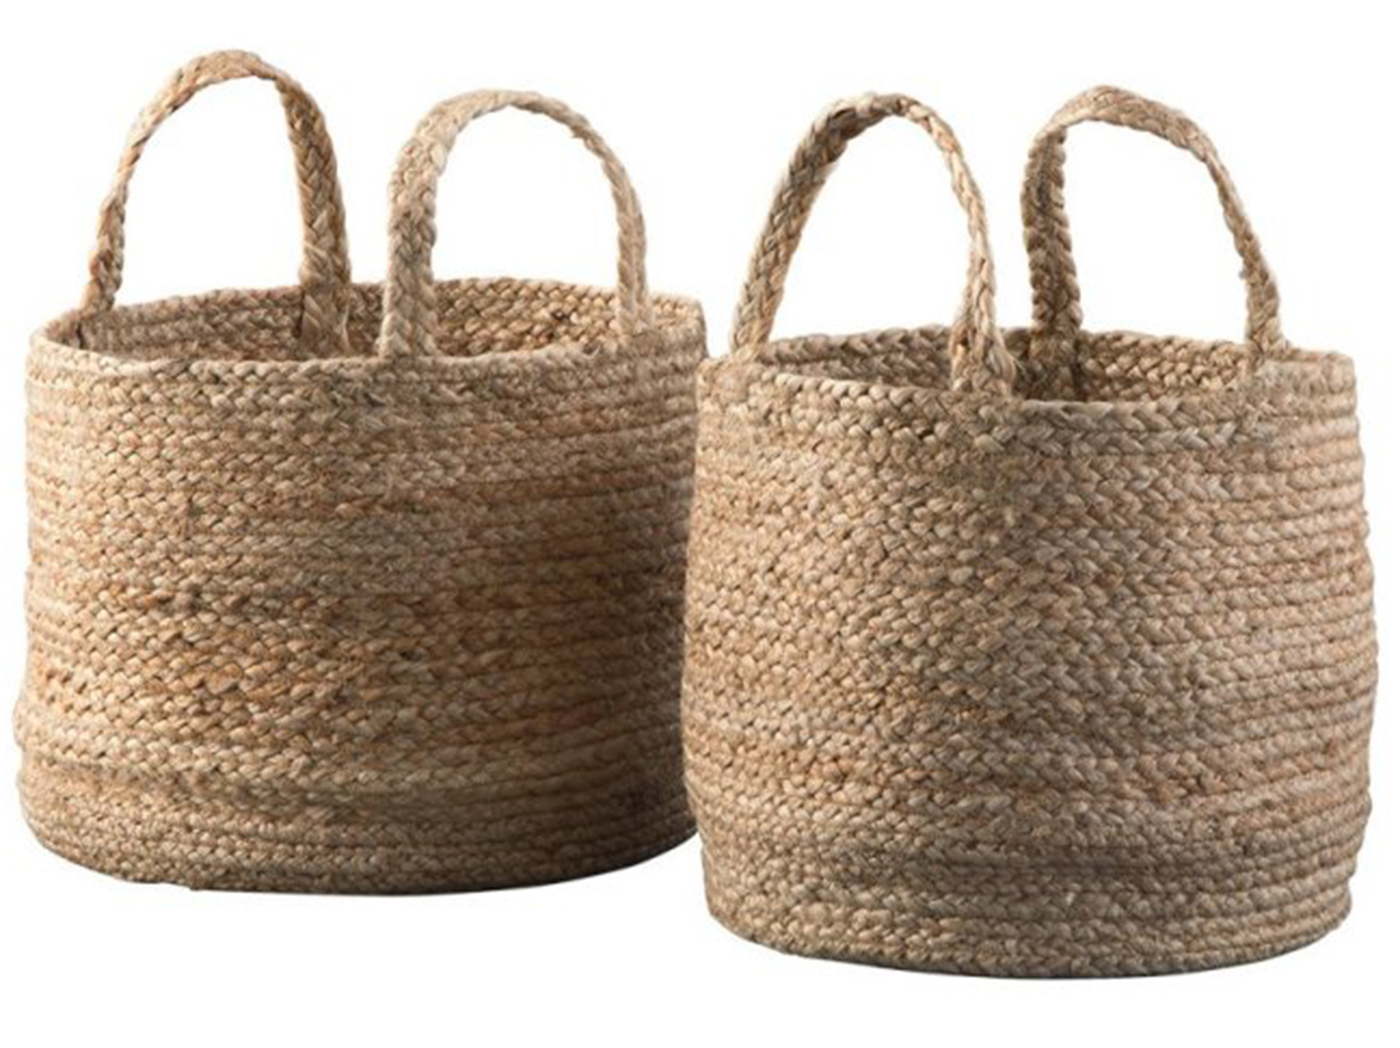 "Set of 2 Jute Bastets 12-14""W x 10-11""H"